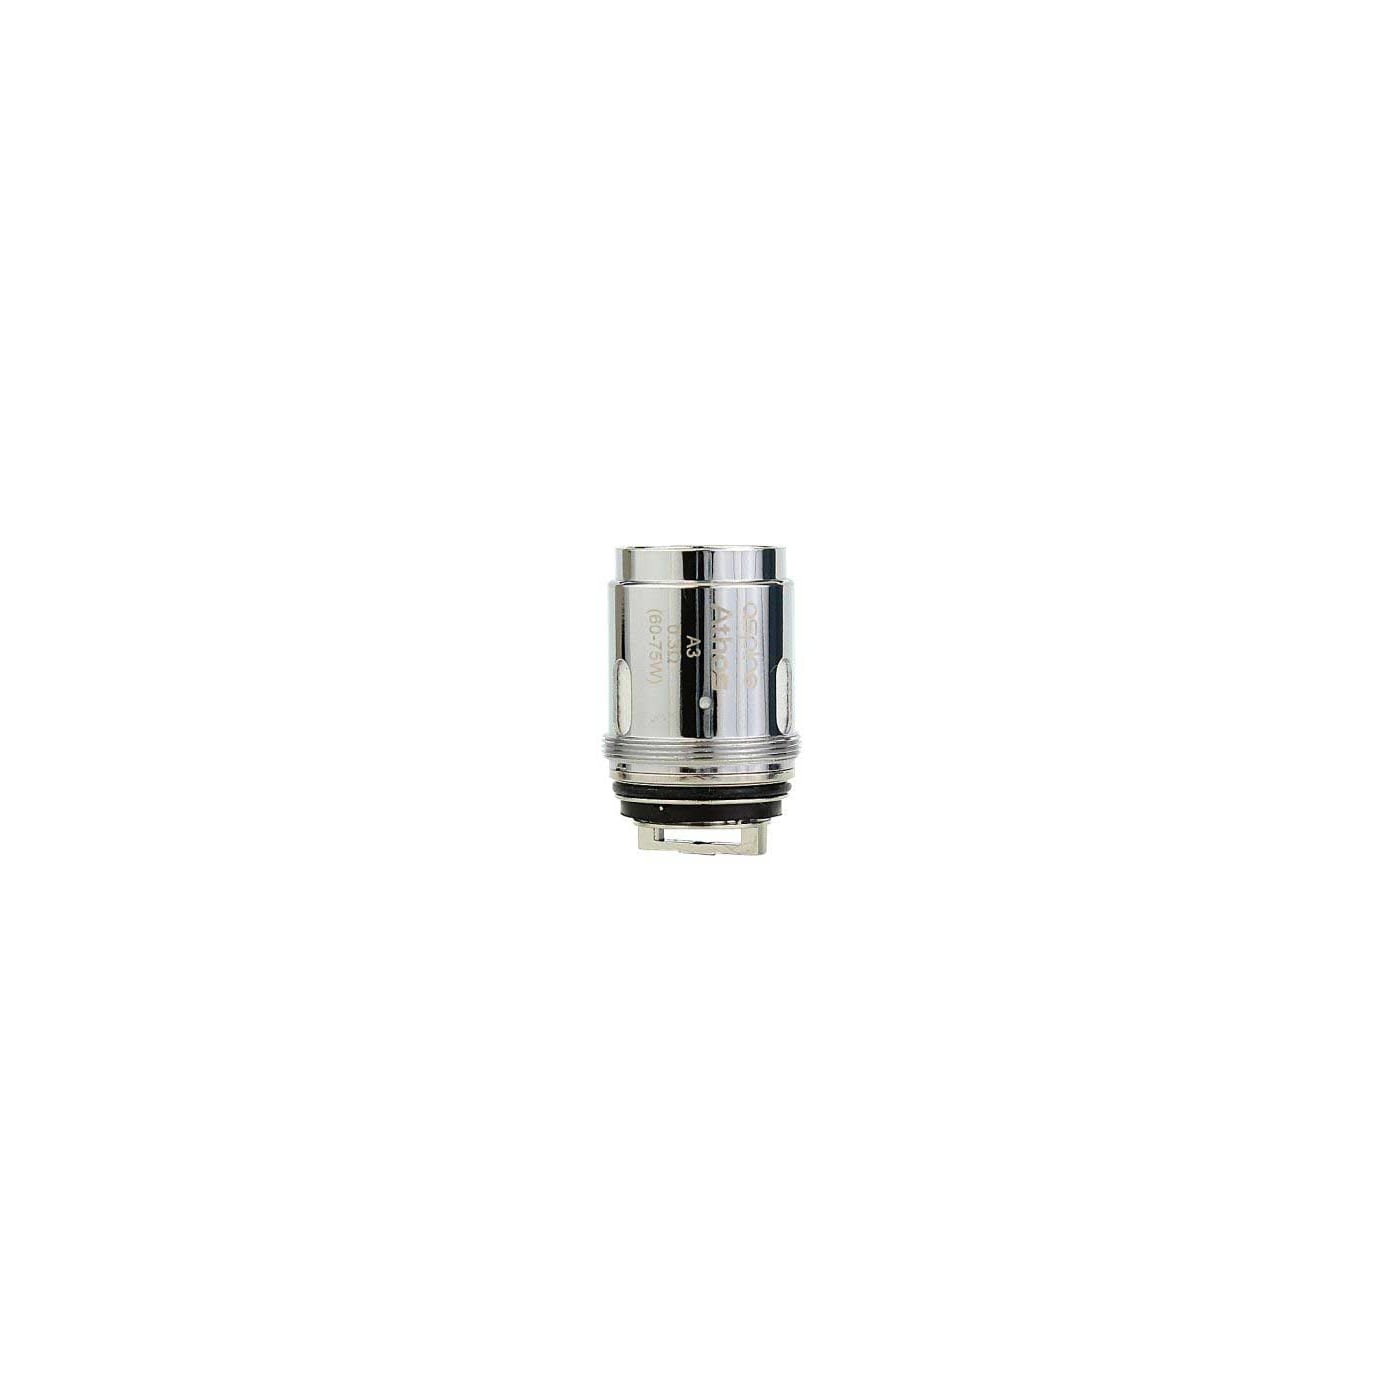 Aspire Athos A3 Replacement Coil